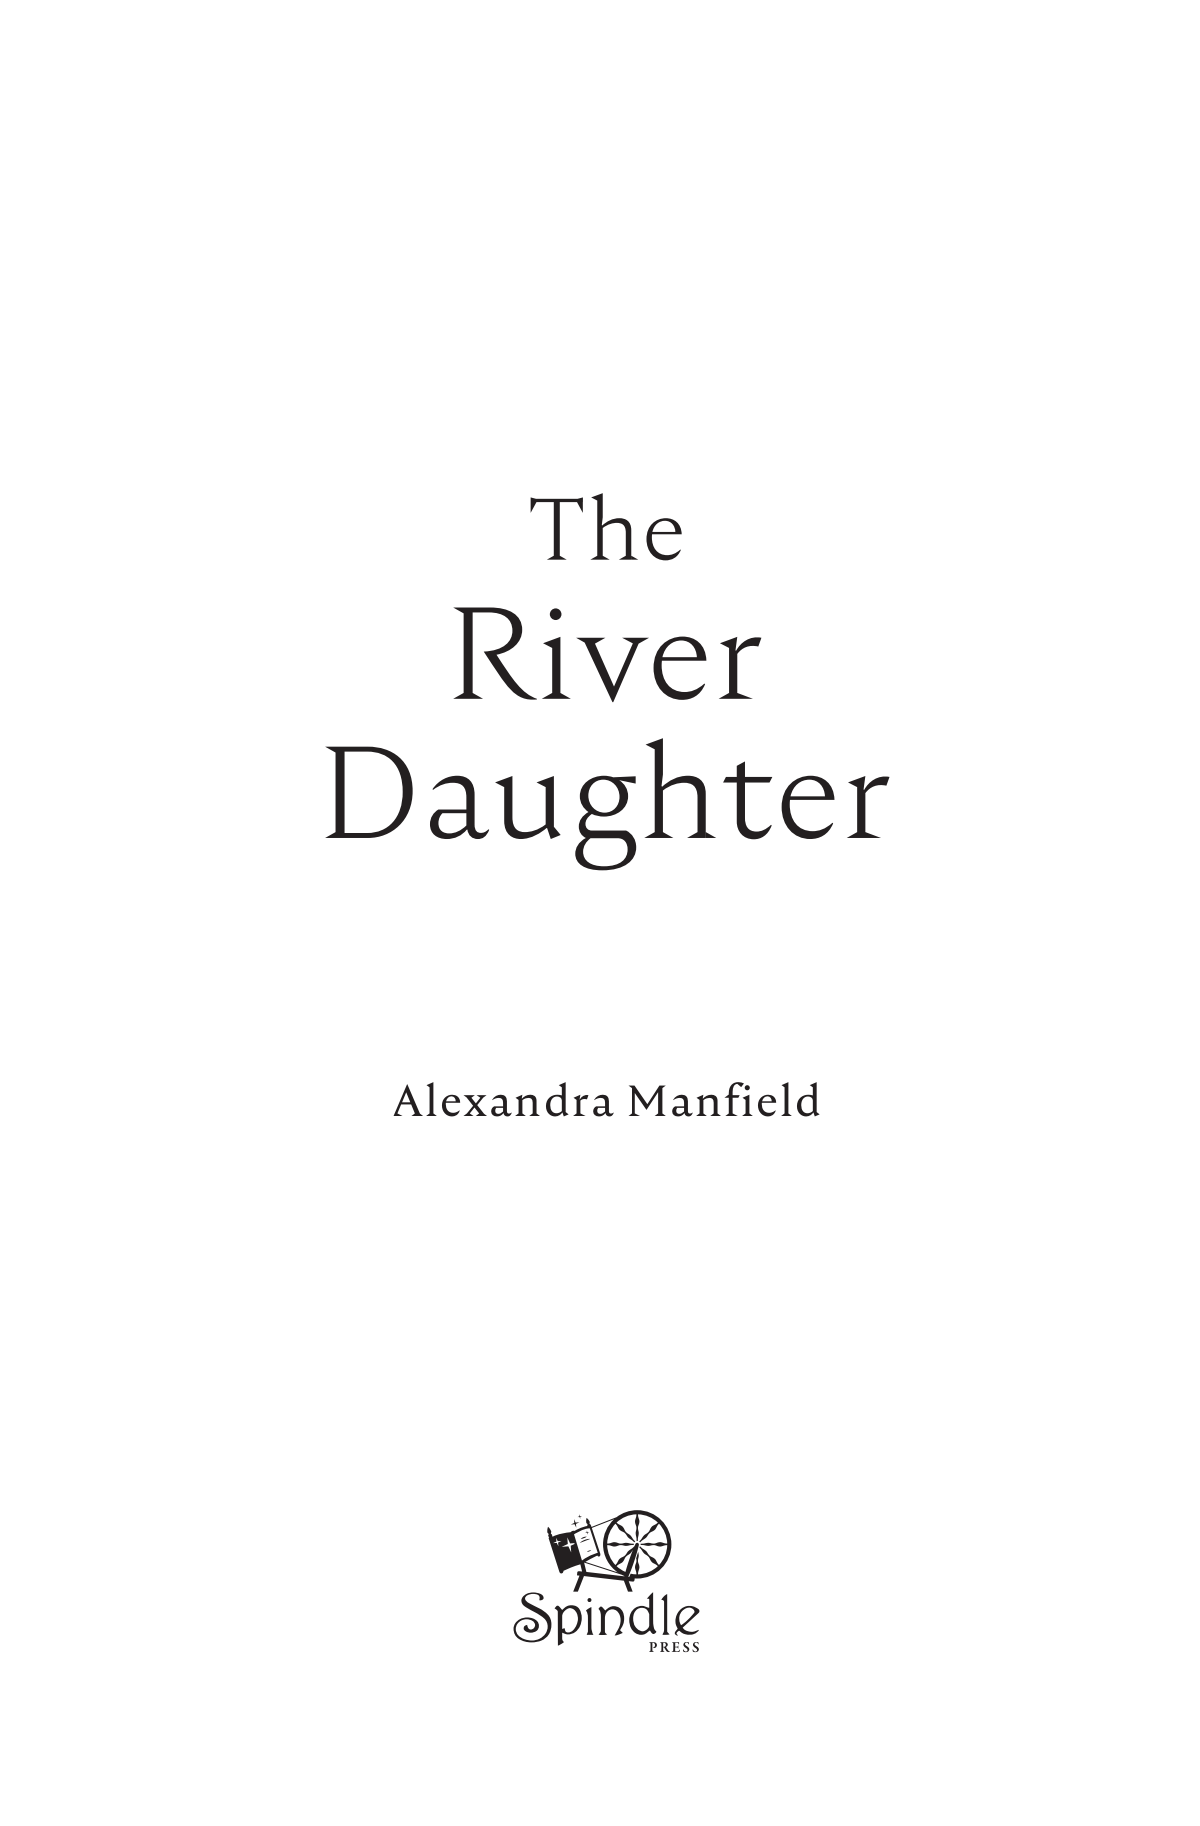 The River Daughter Interior